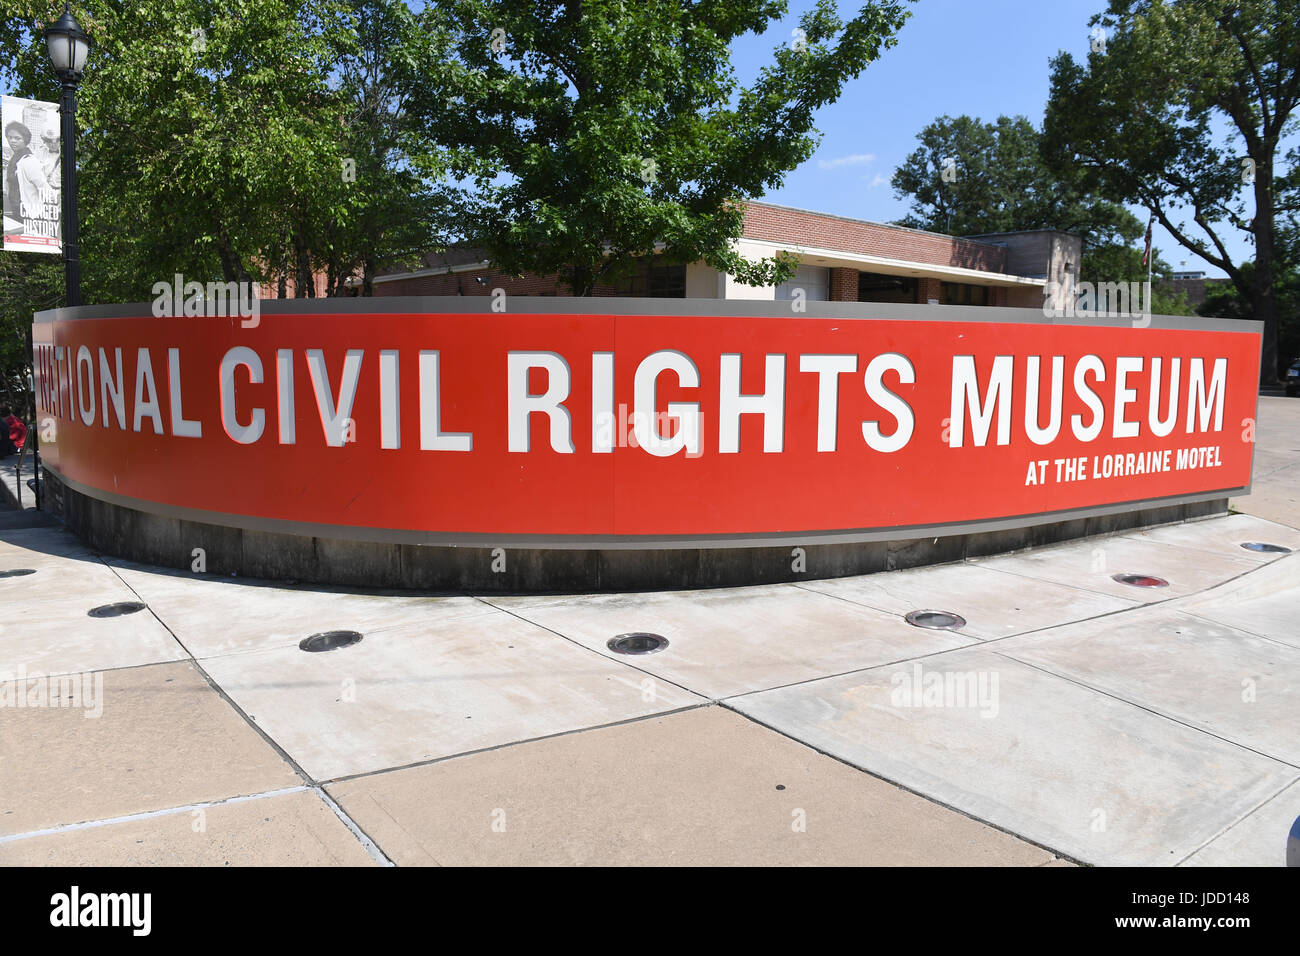 Memphis, TN, USA - June 9, 2017: The National Civil Rights Museum at the Lorraine Motel where Dr. Martin Luther King Jr. was assassinated Stock Photo